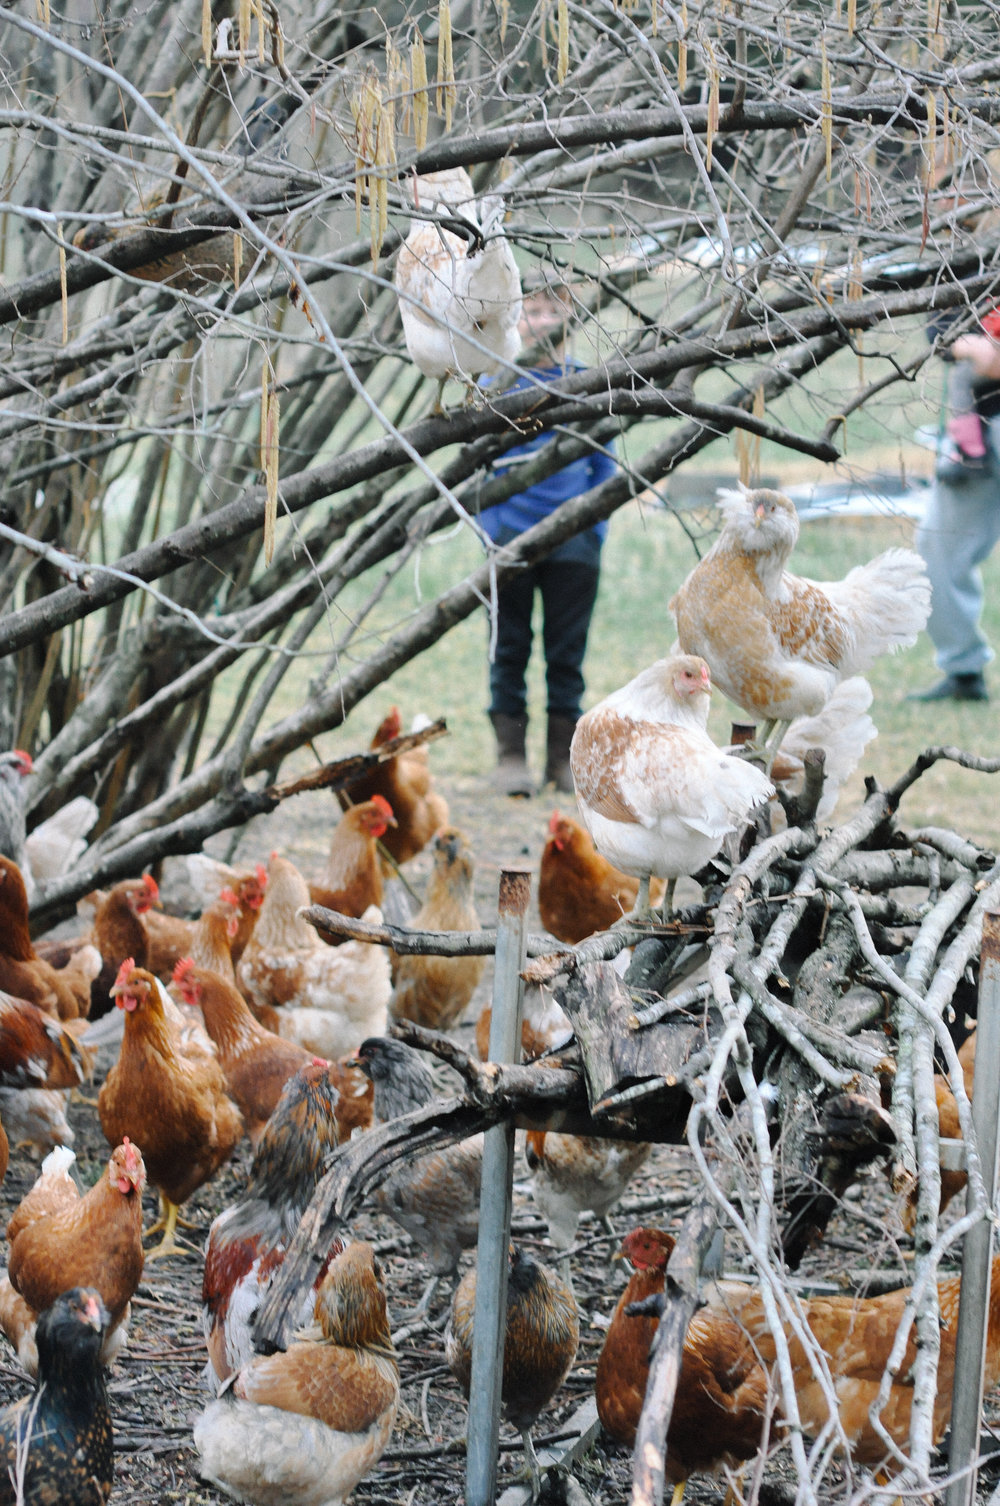 redtree farmstead chickens.jpg